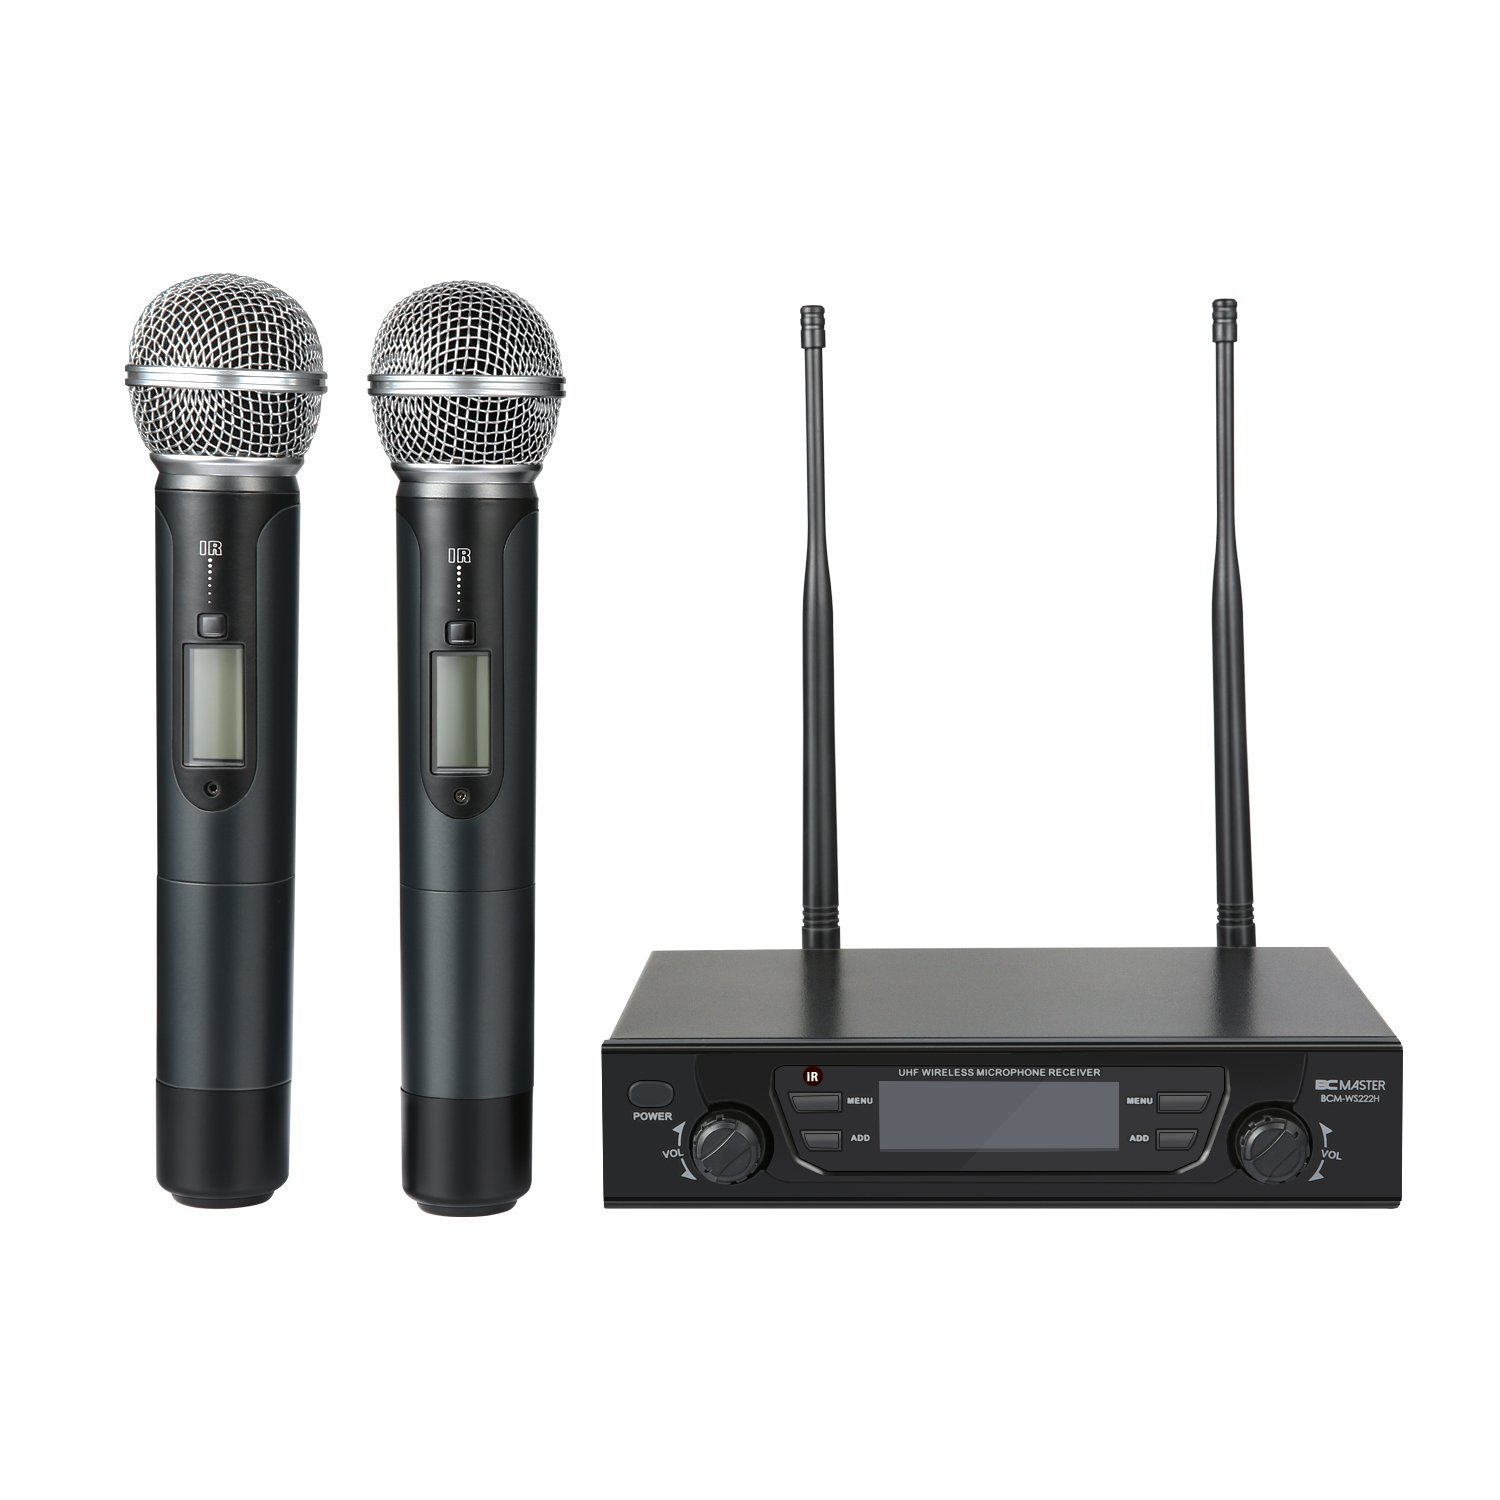 BC Master Wireless Microphone Dual Channel UHF System with Selectable Frequencies Prevent Interference, Christmas gift for Family Party, Church, Small Karaoke club ecc (Range:190-260Ft)